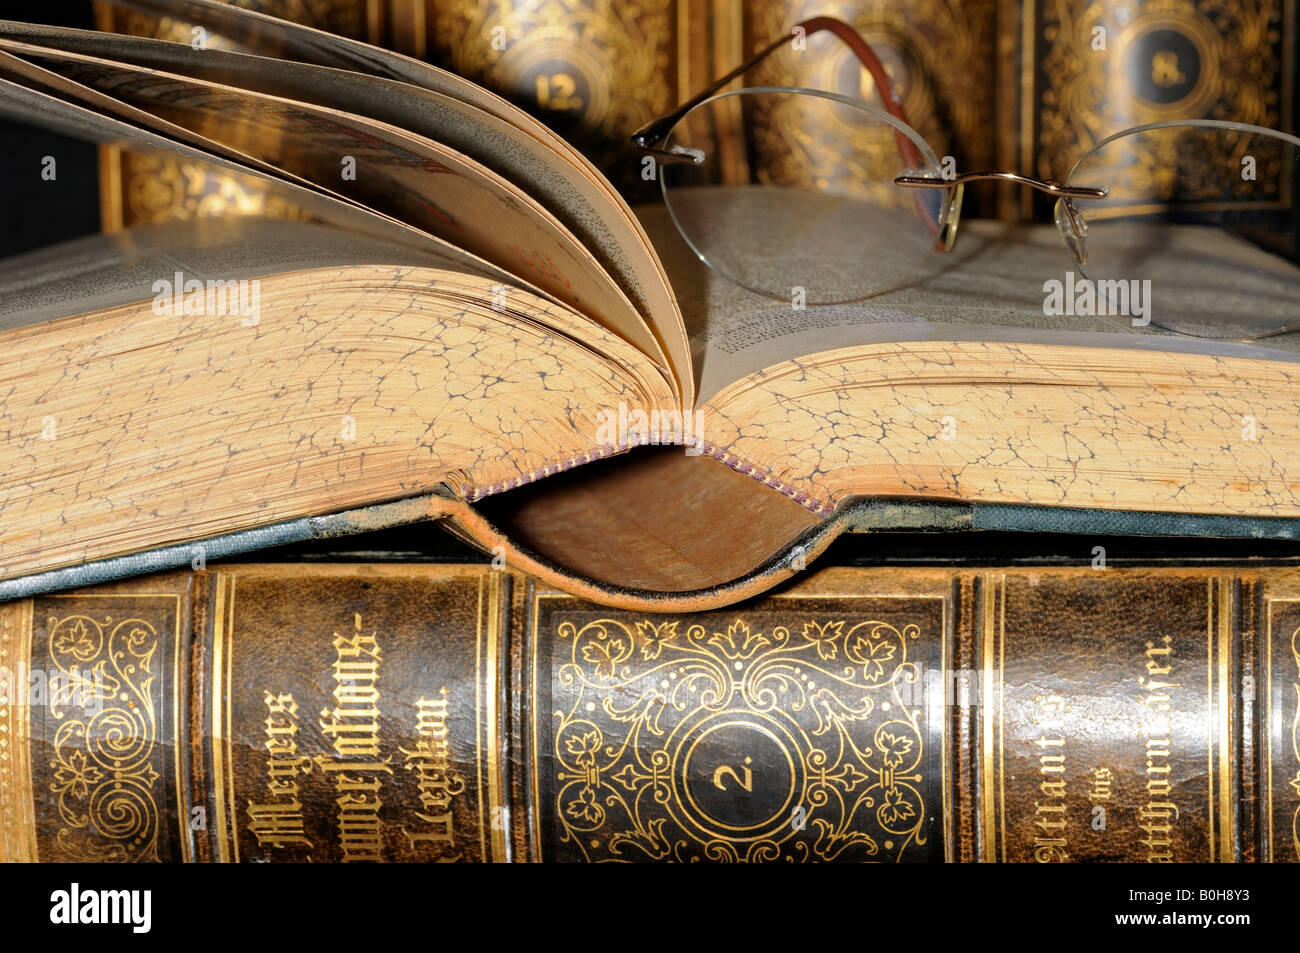 Reading glasses resting on an open page of an old encyclopaedia, leather bound books - Stock Image